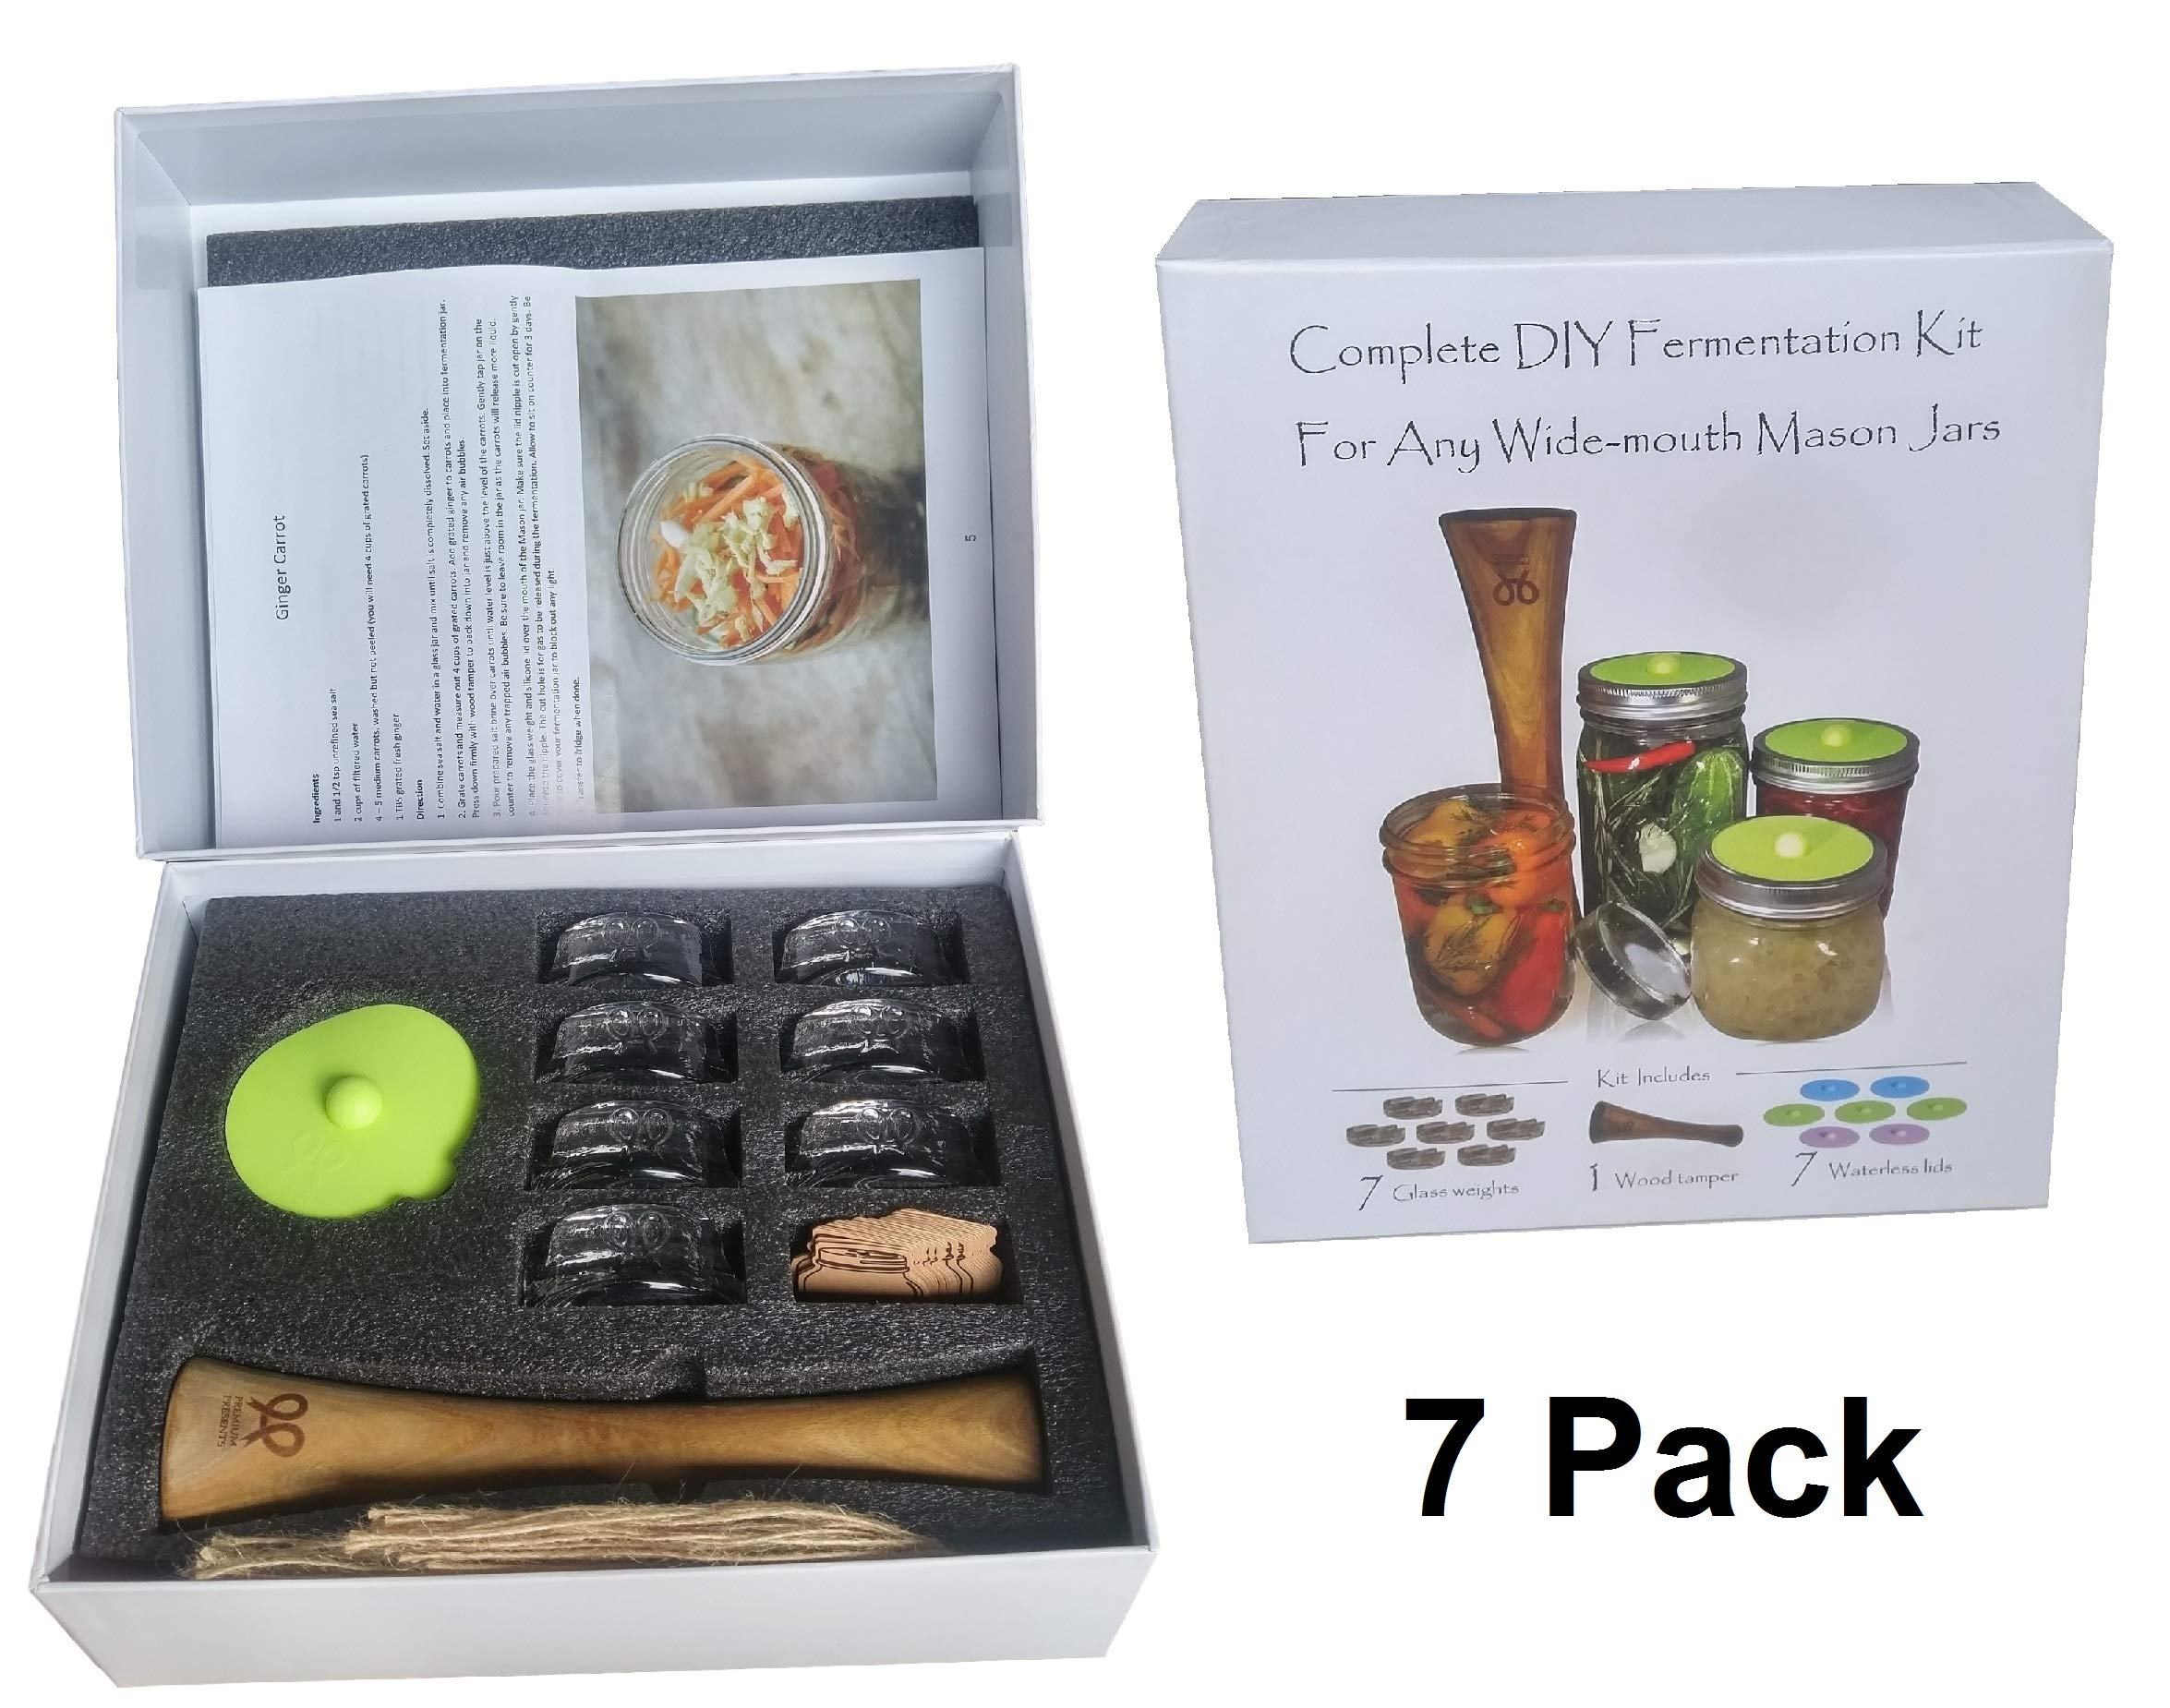 Canning kit.Complete DIY fermentation kit for wide mouth mason jars or pickling jars. 5 glass weights, 1 tamper, 5 airlock lids. Make Sauerkraut, Kimchi, Pickles or any fermented food.Premium Presents by PremiumPresents